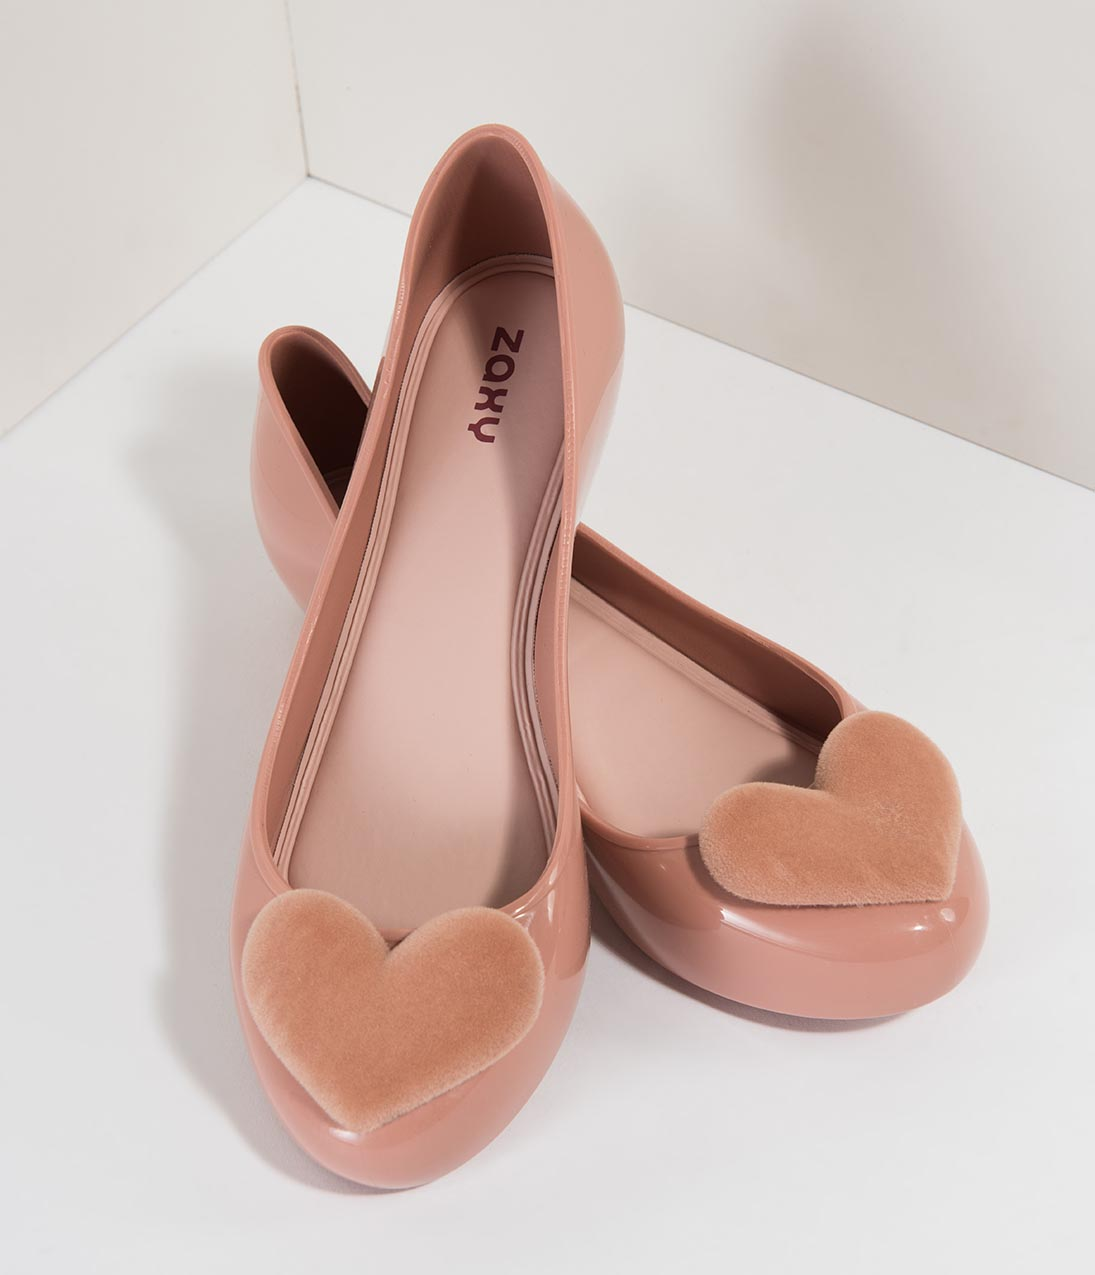 Retro Vintage Flats and Low Heel Shoes Dusty Pink Molded  Velvet Pop Heart Flats $38.00 AT vintagedancer.com